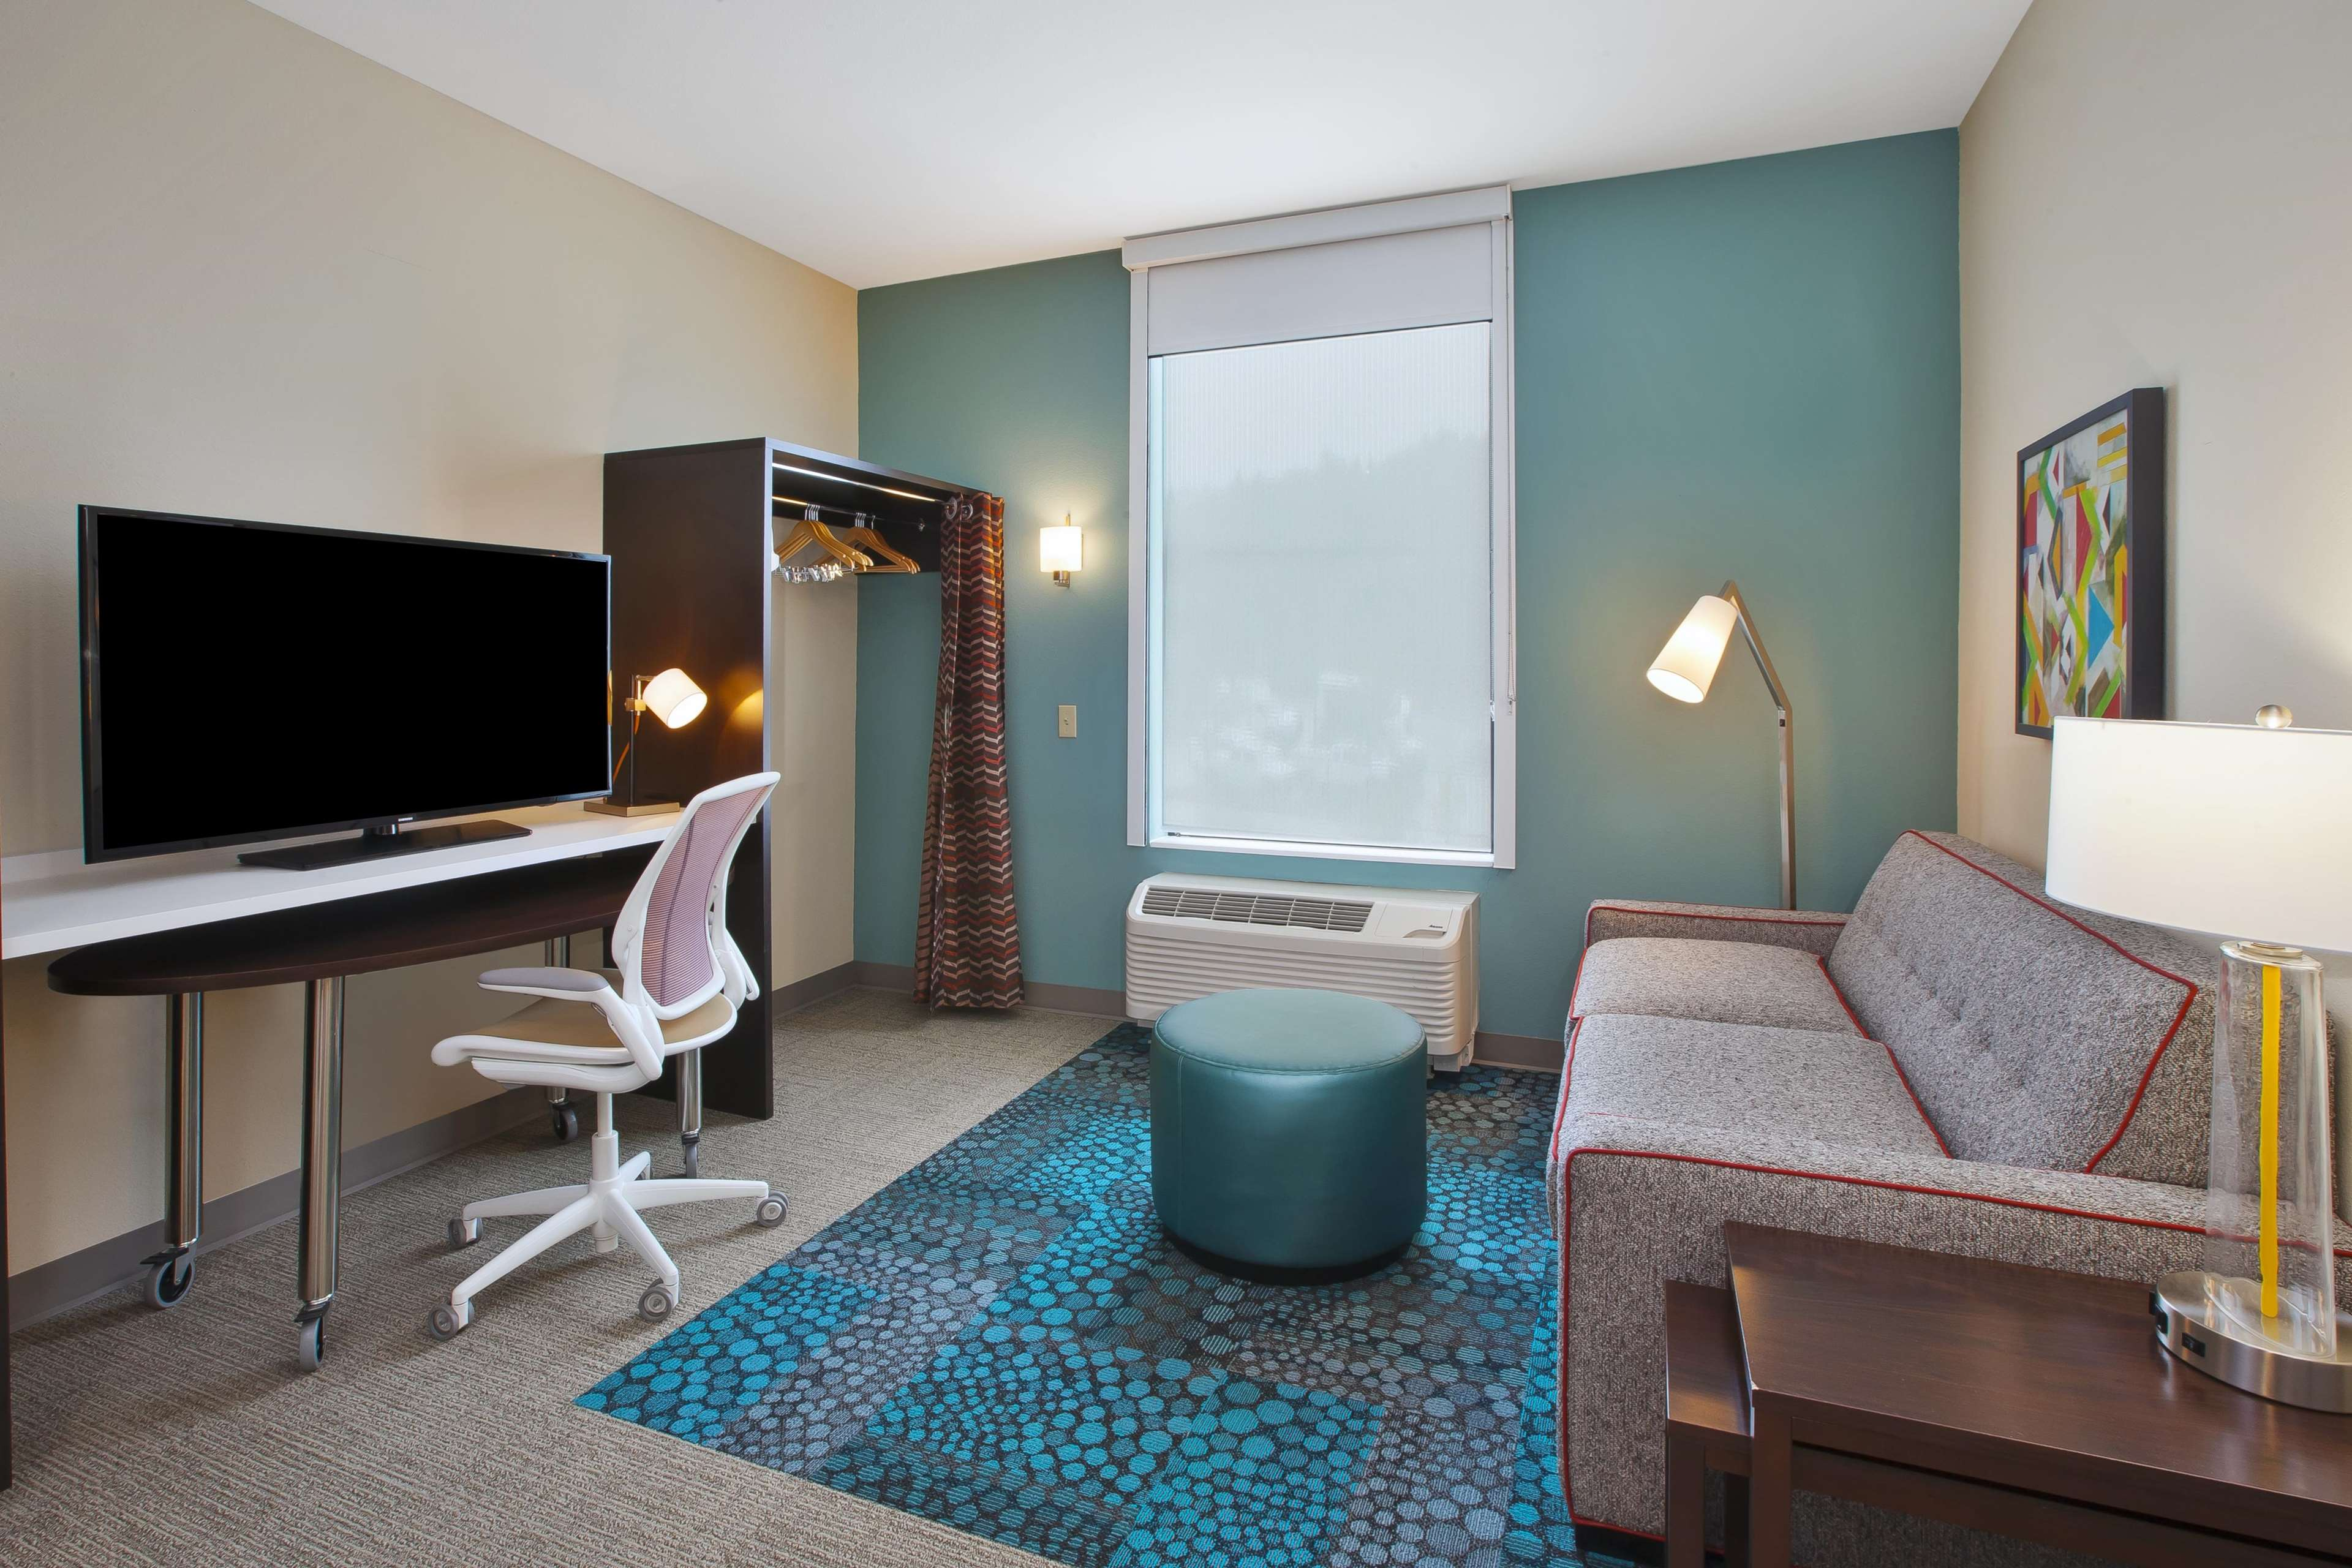 Home2 Suites by Hilton Holland image 20